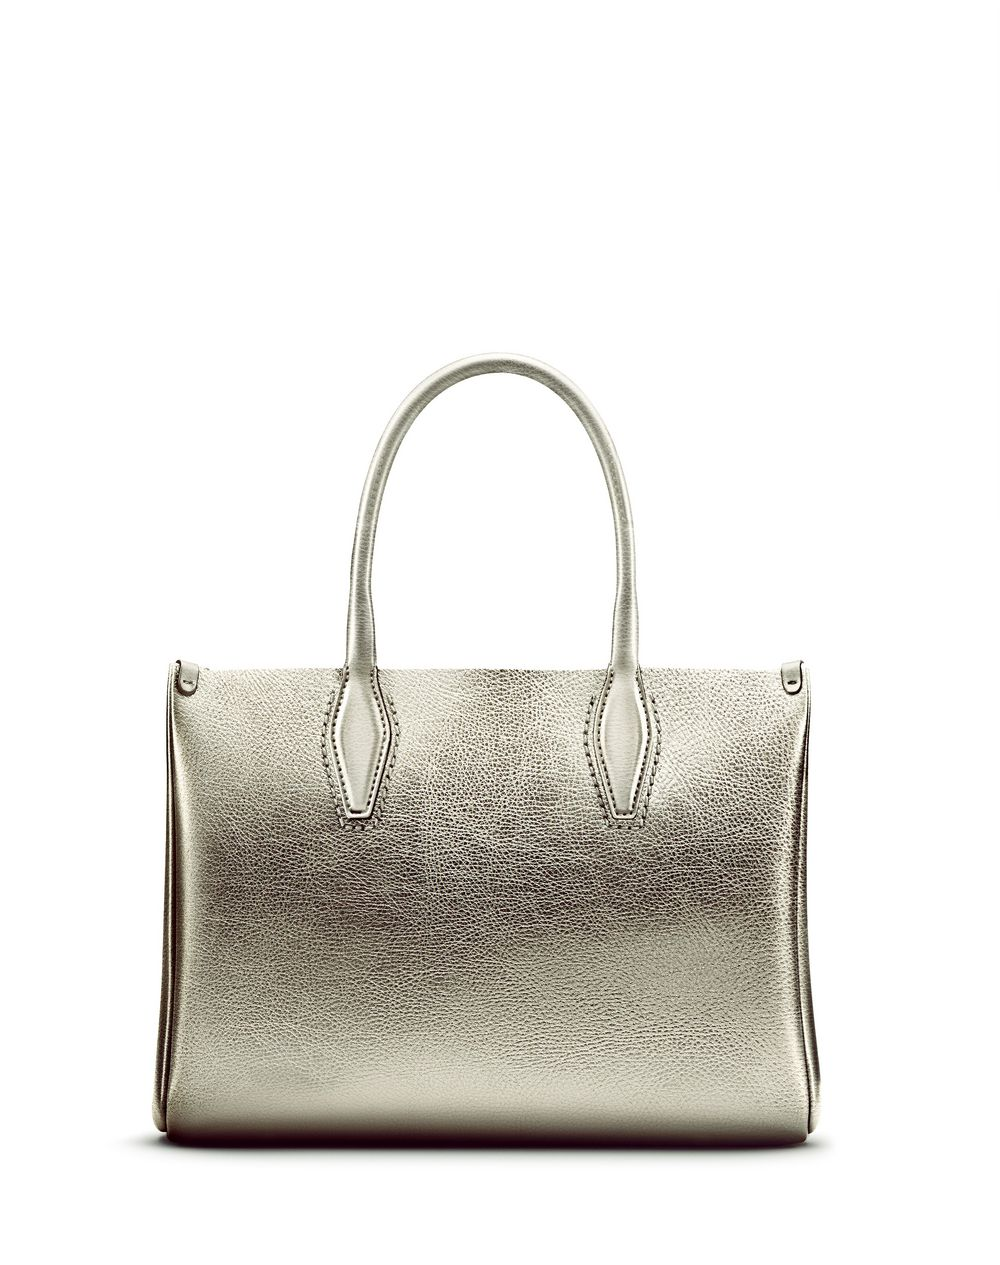 "SMALL PALE GOLD ""JOURNÉE"" BAG - Lanvin"